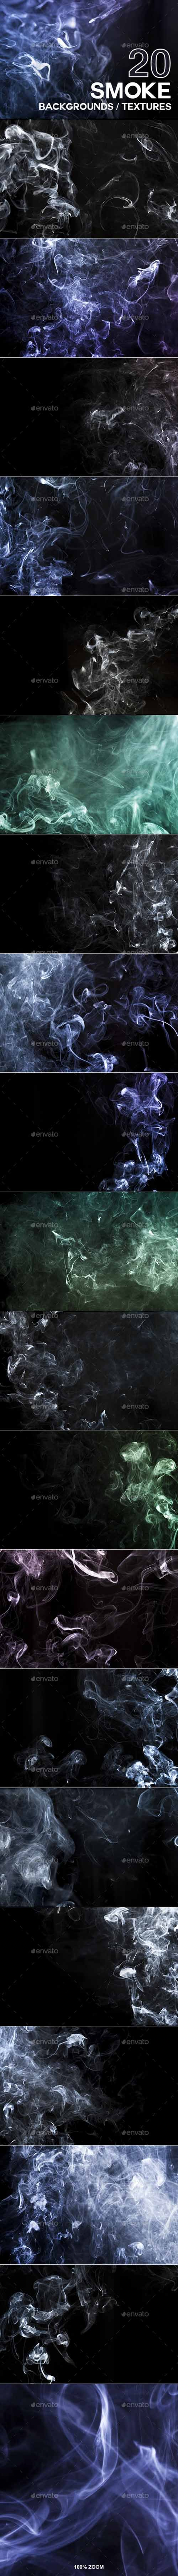 20 Smoke Backgrounds / Textures 20348204